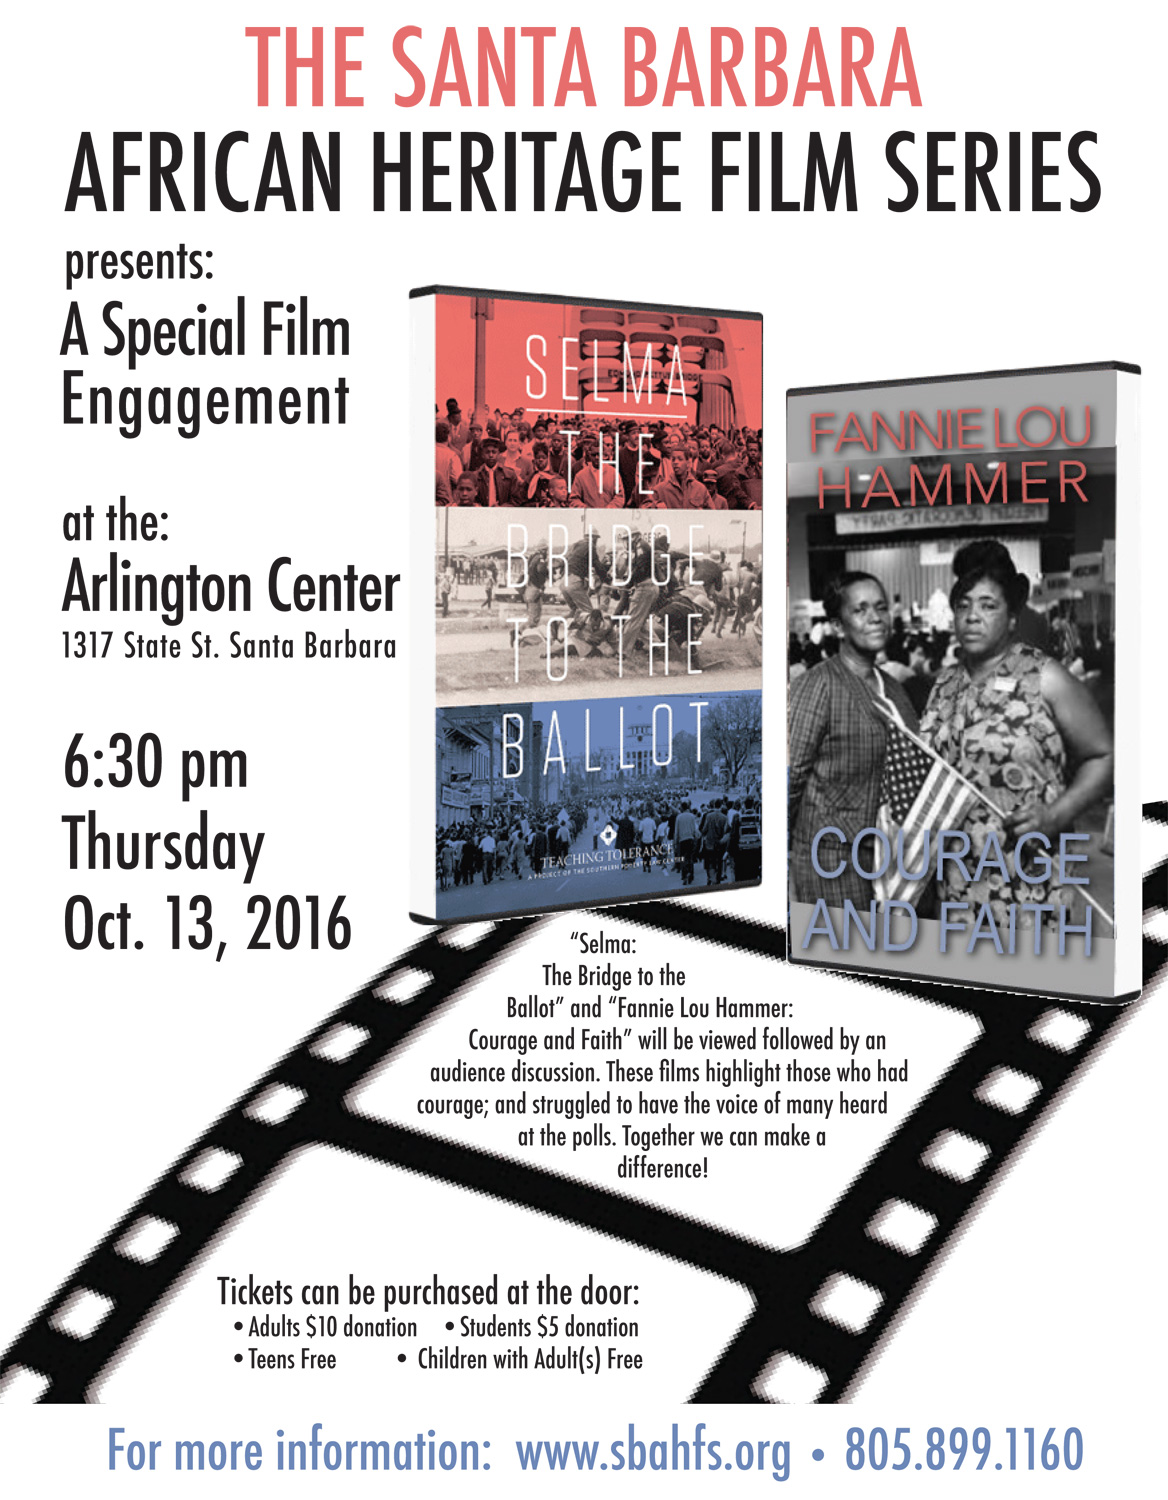 The Santa Barbara African Heritage Film Series